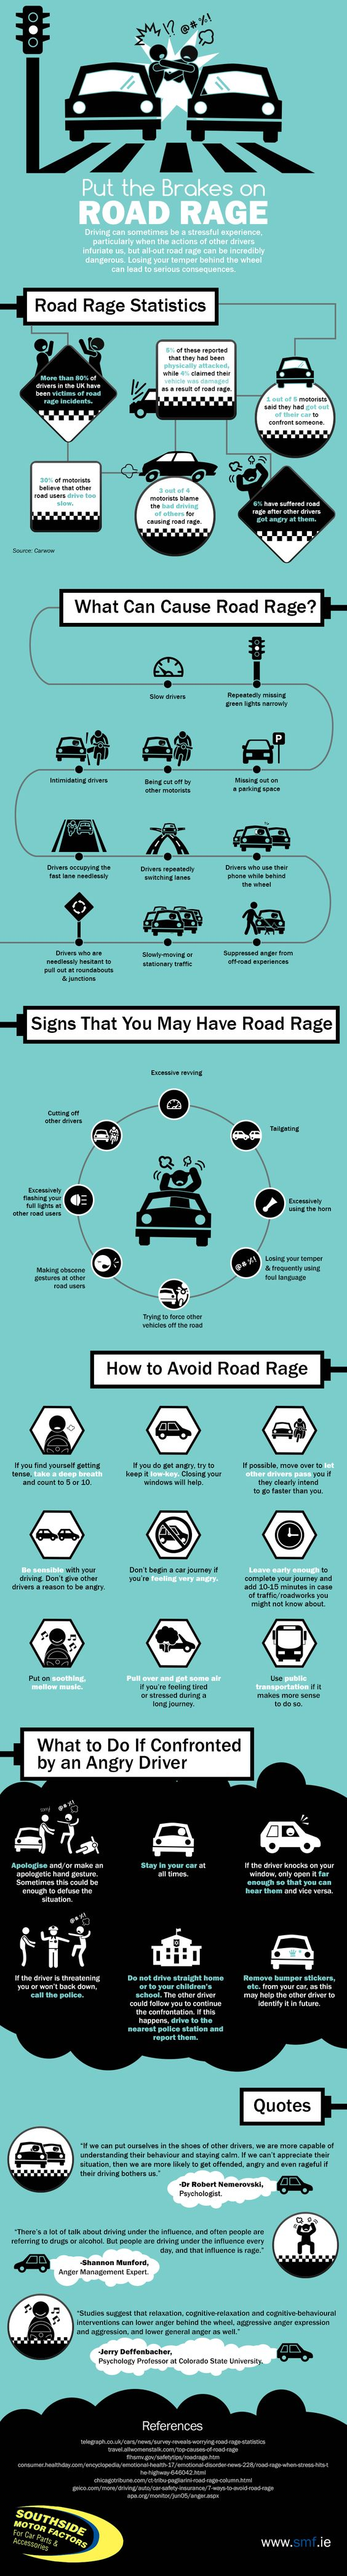 Put the brakes on road rage Infographic